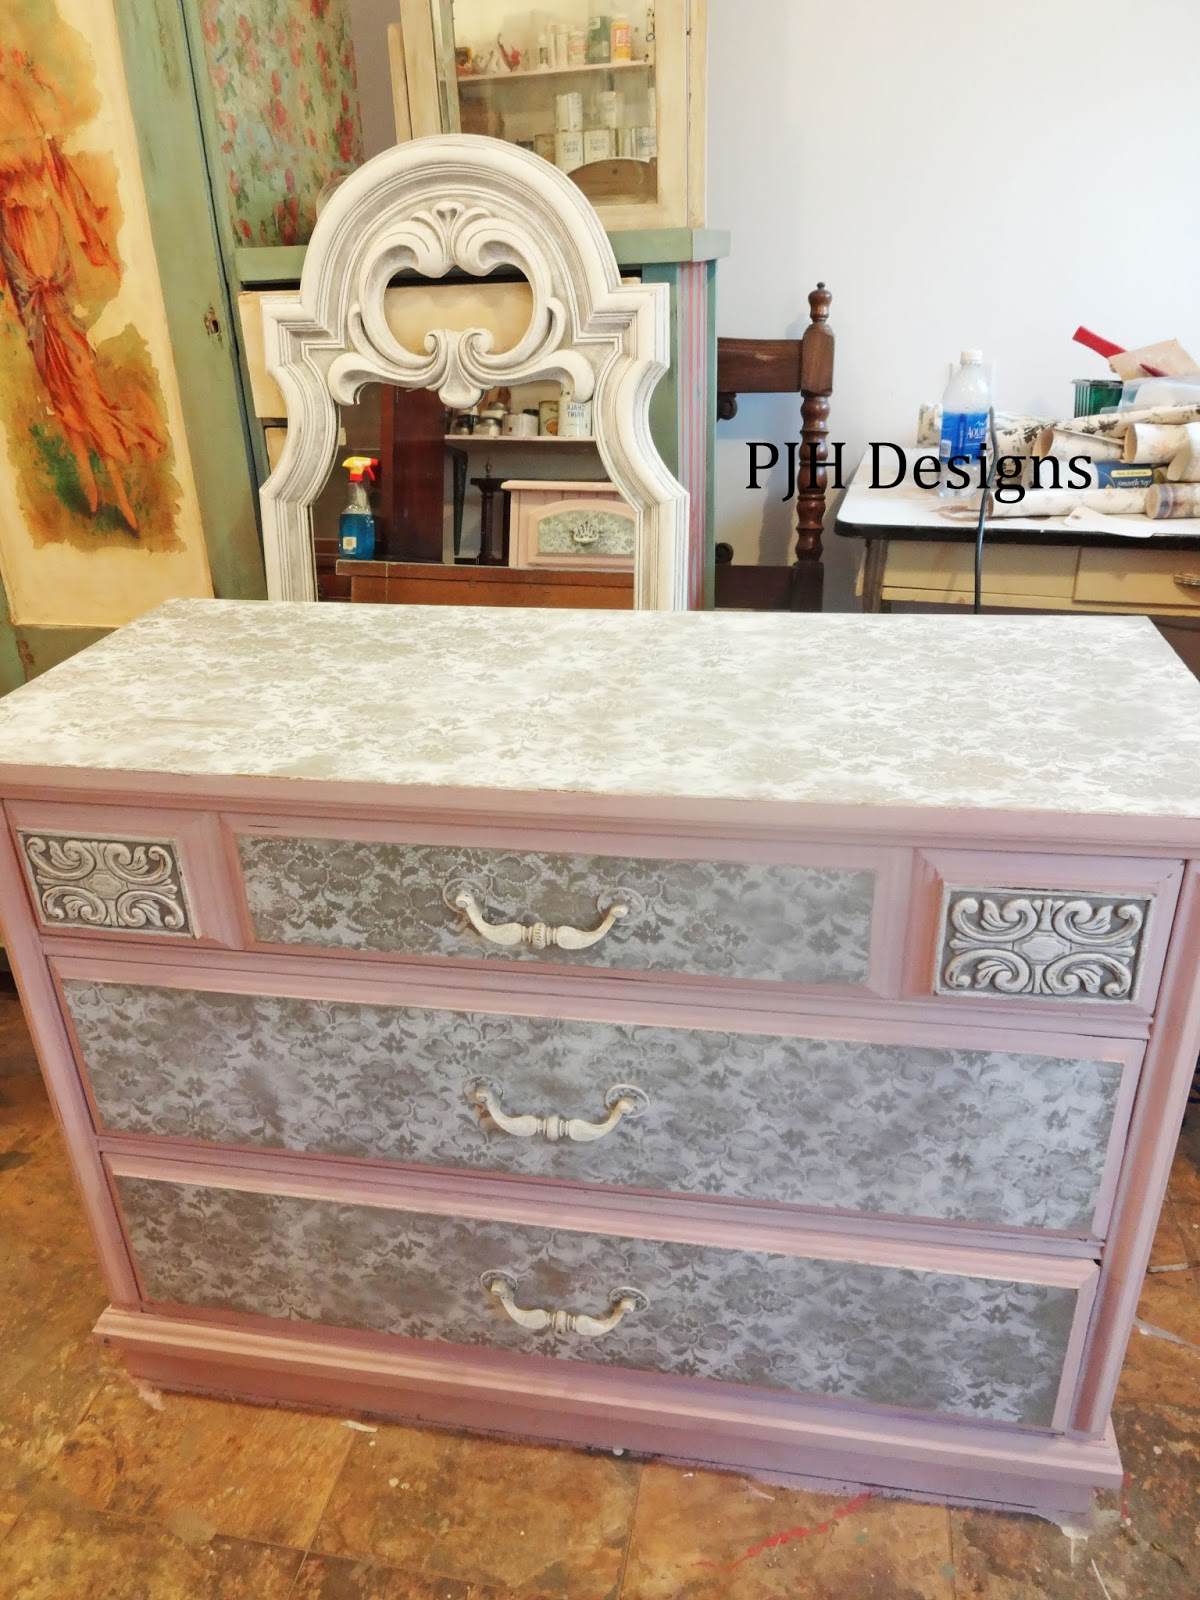 PJH Designs Hand Painted Antique Furniture Antoinette Pink Lace Bedroo